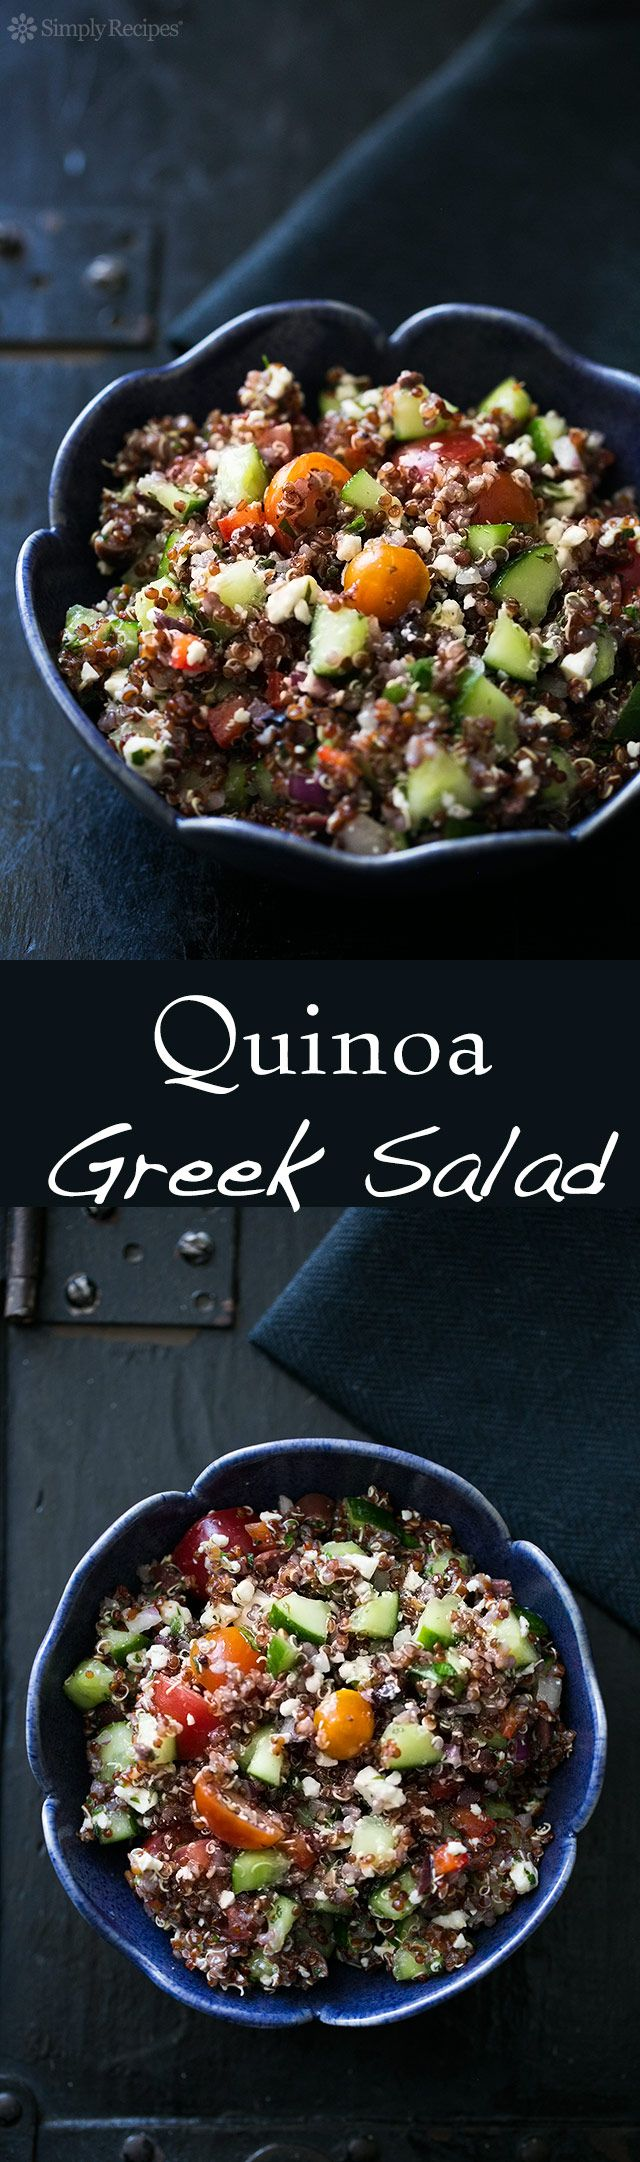 Healthy delicious Greek salad with quinoa, cherry tomatoes, cucumbers, red onion, kalamata olives, and feta cheese. So easy! Prep the veggies while the quinoa is cooking. It all comes together in minutes. On SimplyRecipes.com